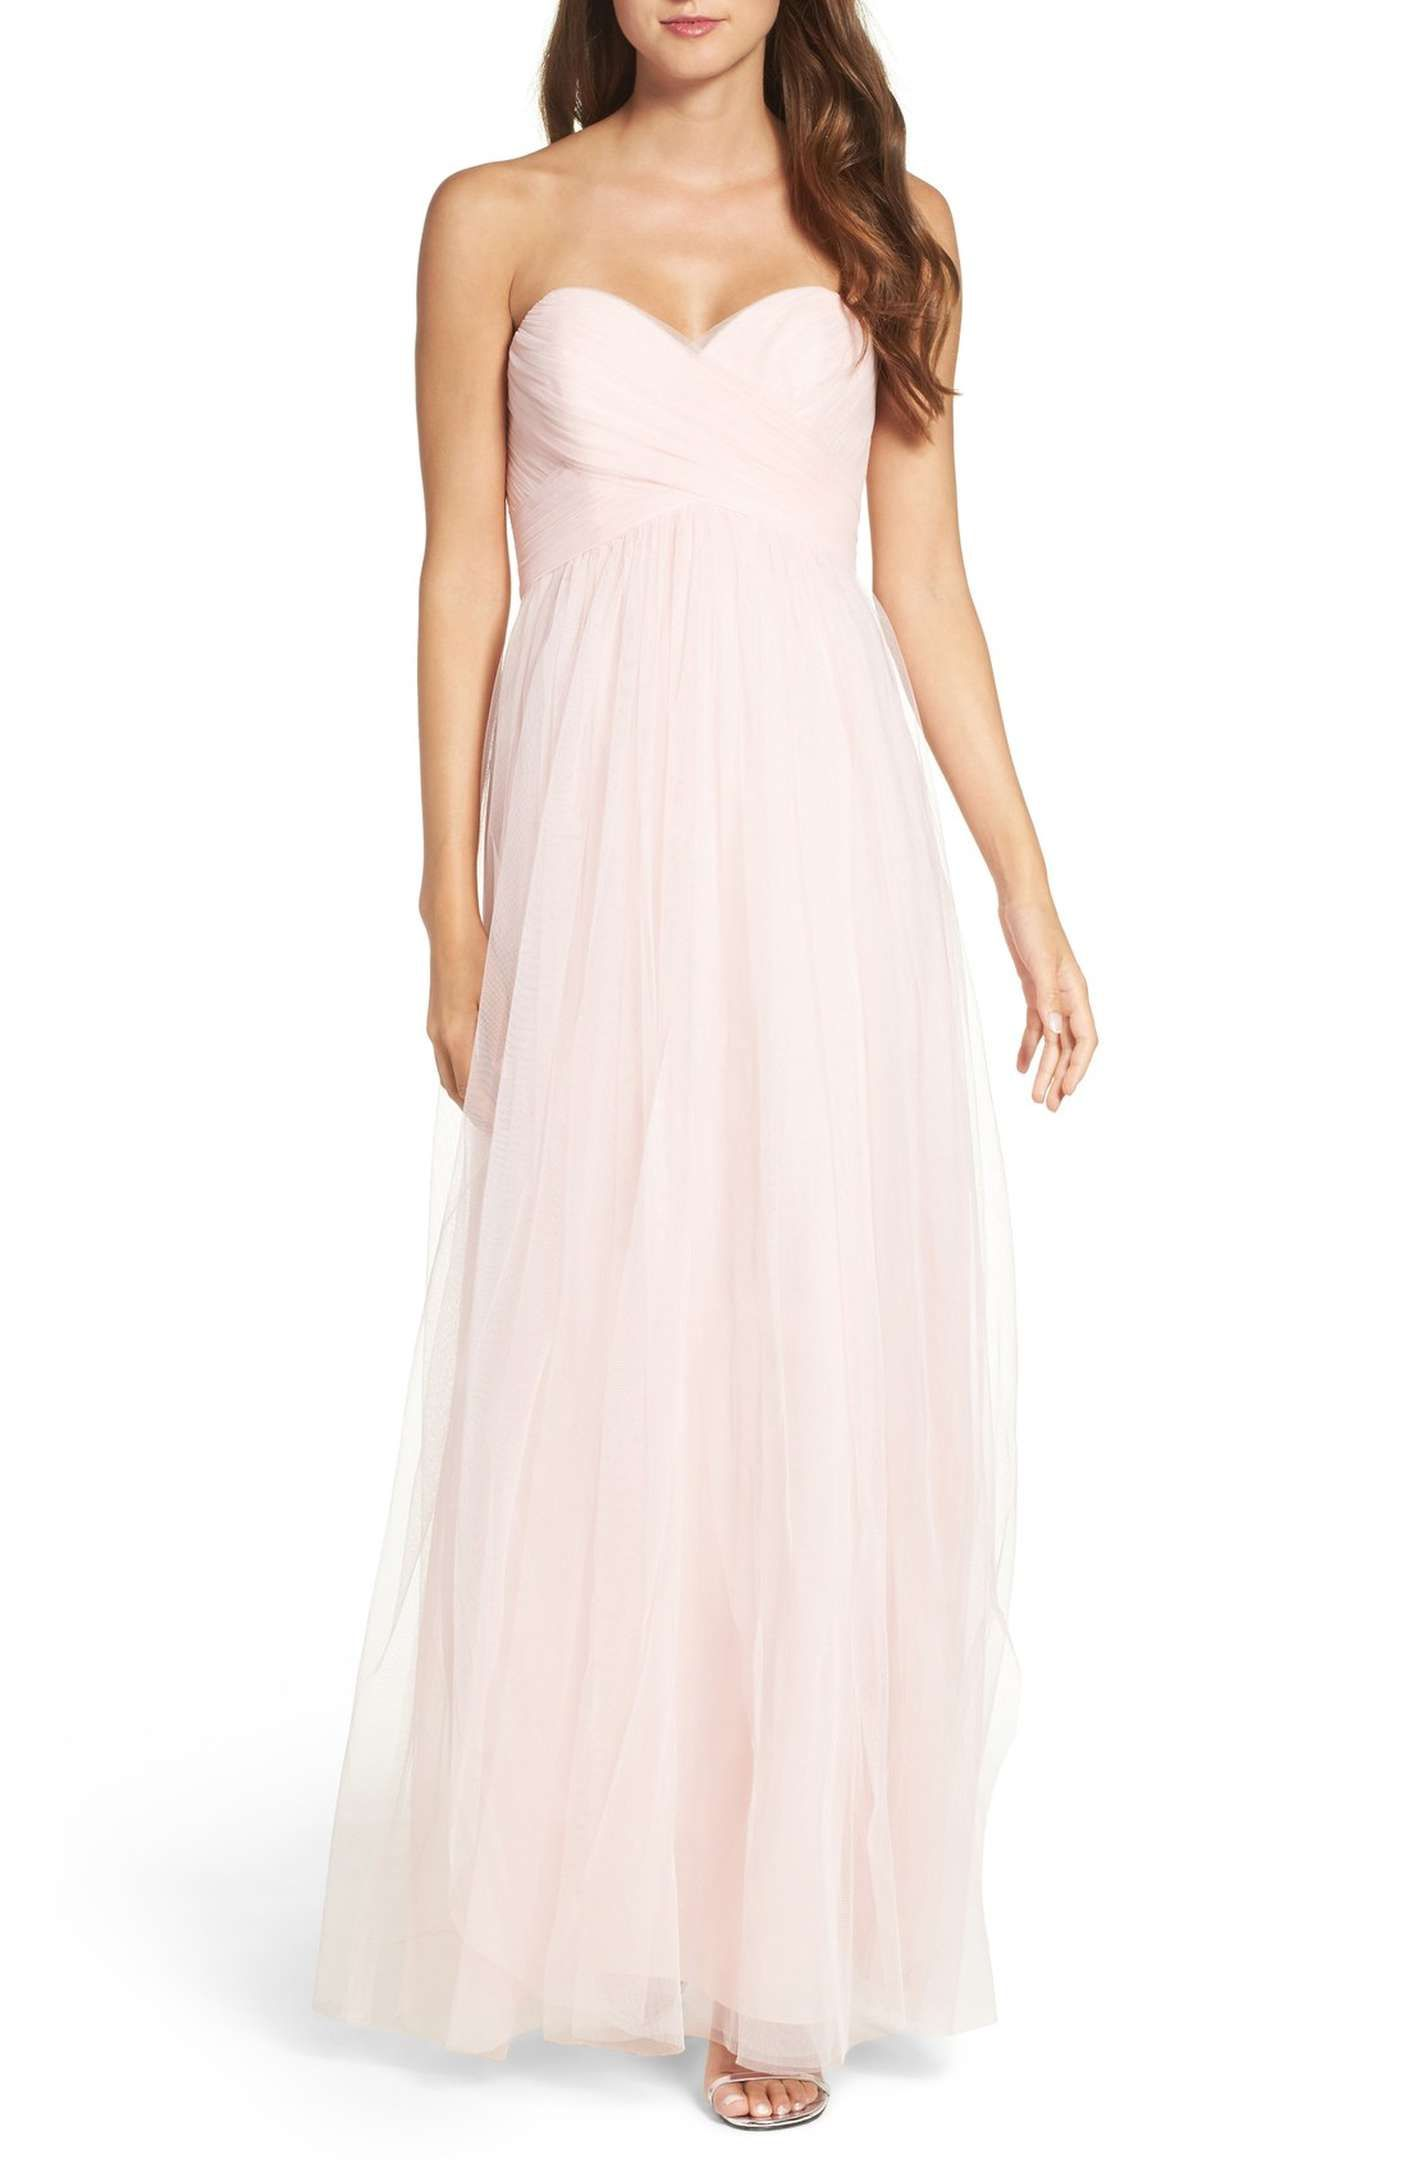 Ice Pink Long Bridesmaid Dress 184 Nordstrom Sweet Heart Neck Line Optional Straps